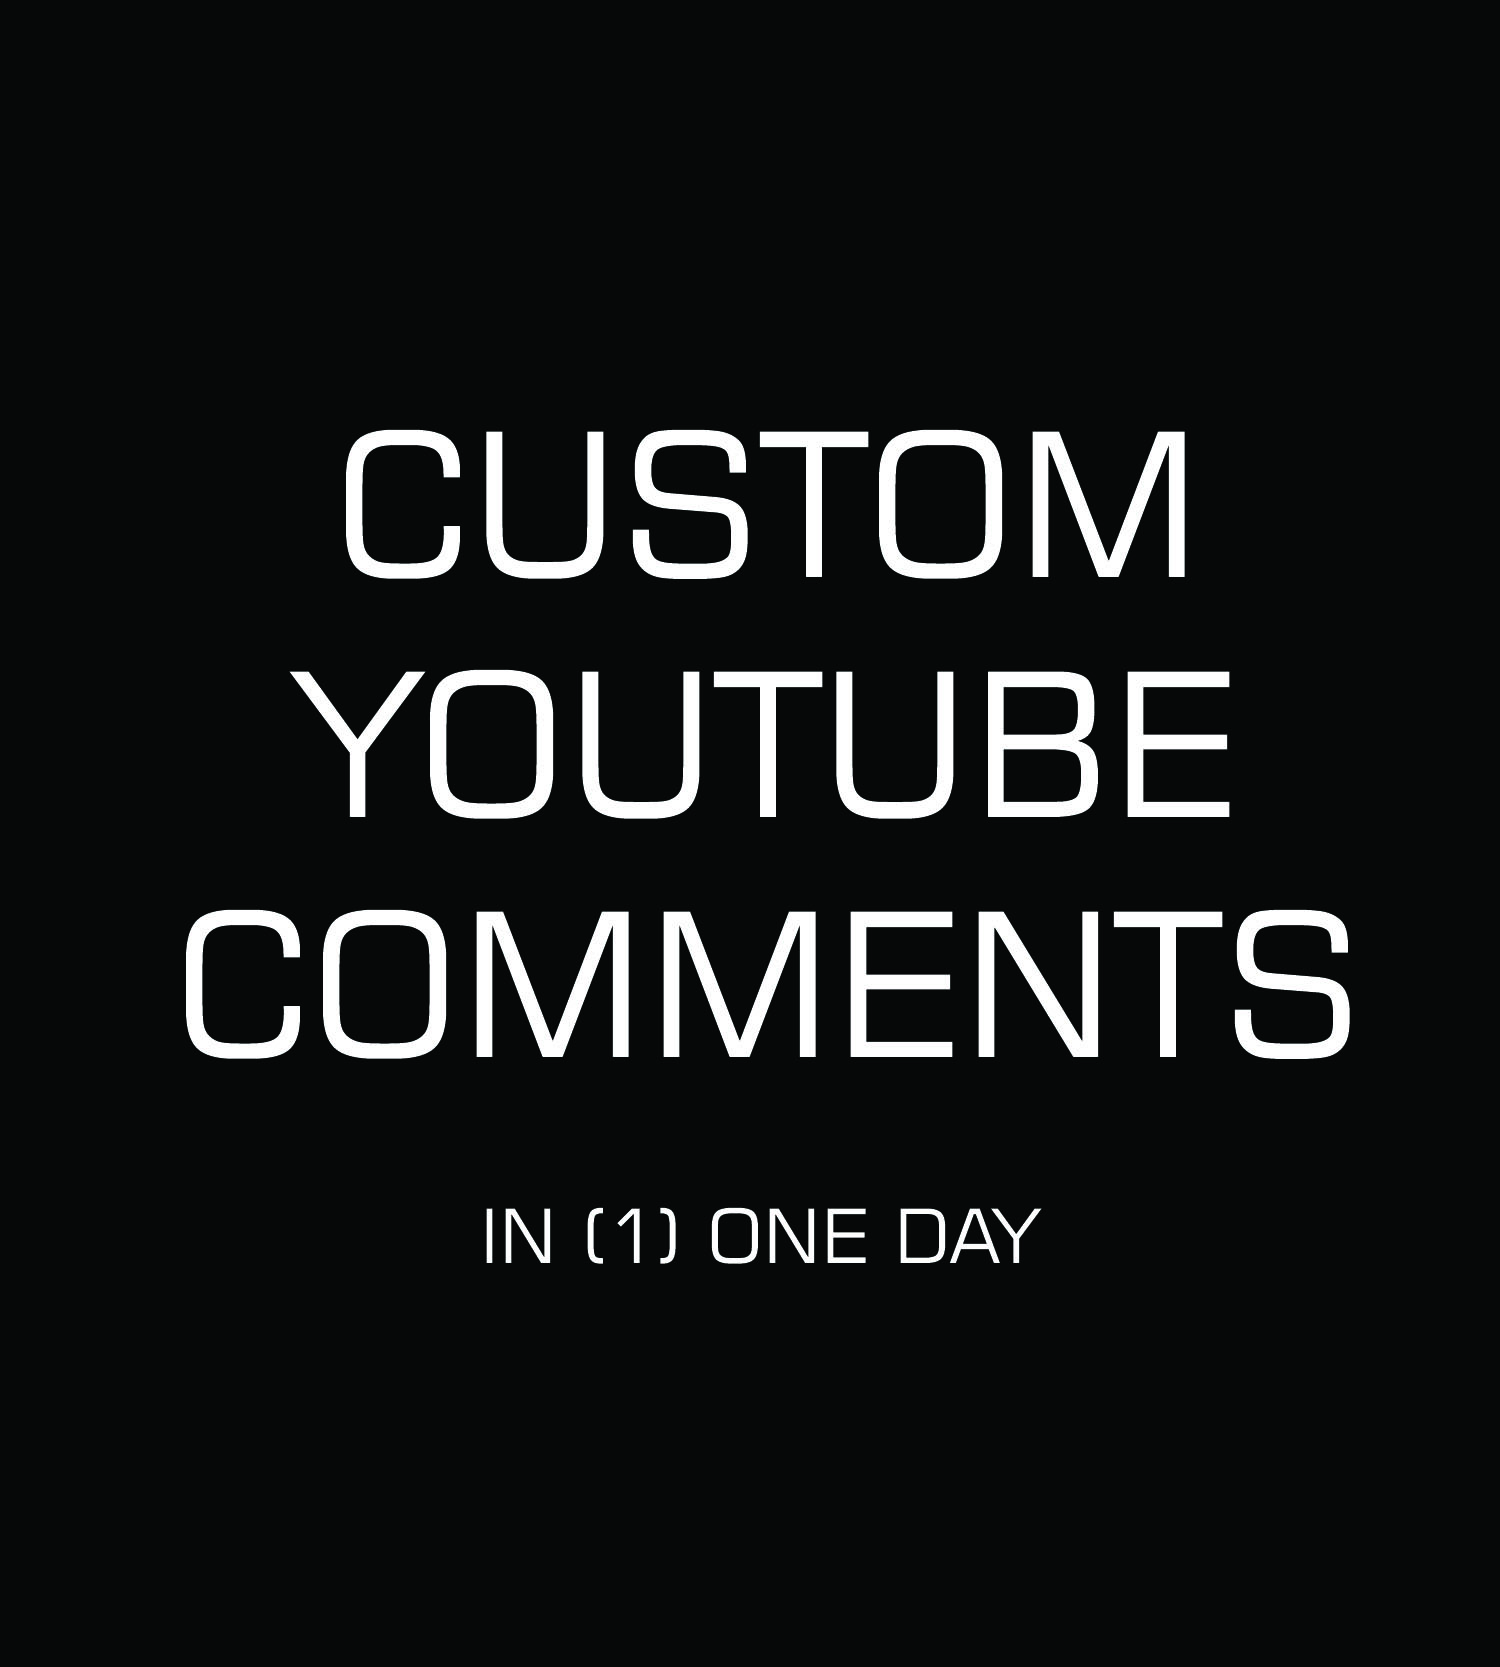 deliver 30 custom organic YouTube comments